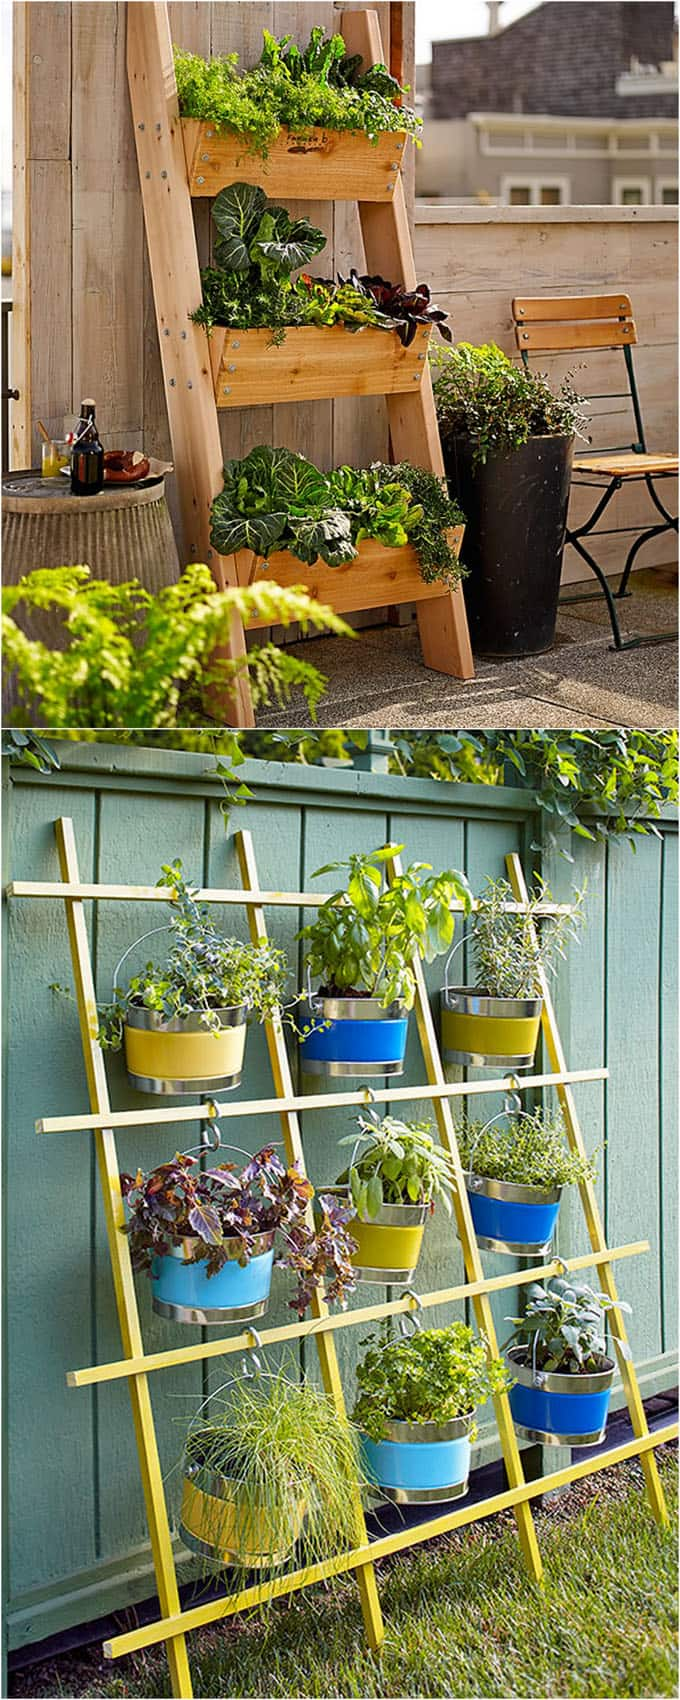 21 Easy Diy Garden Trellis Amp Vertical Growing Structures